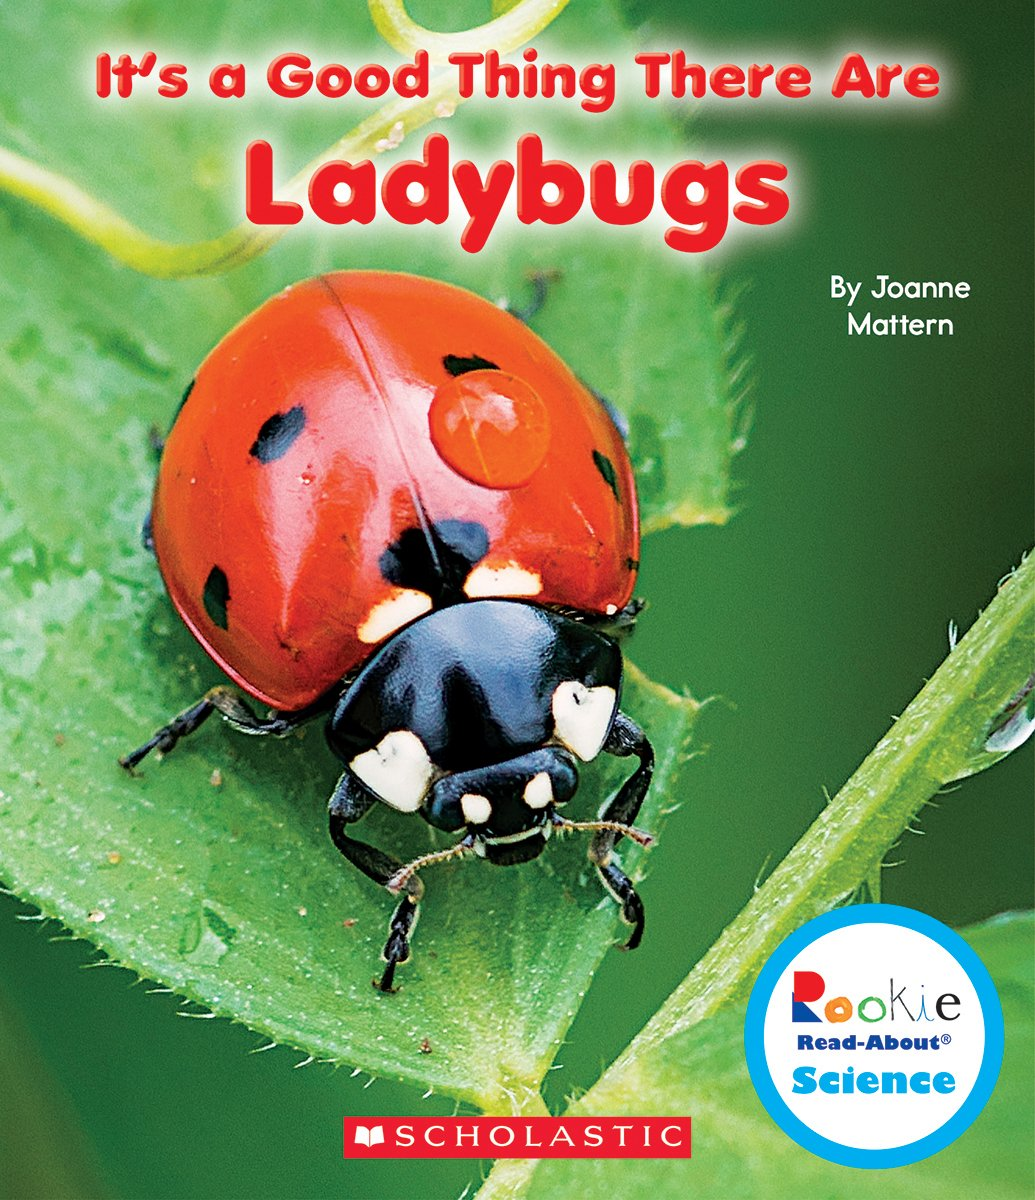 Book: Good Thing There Are Ladybugs